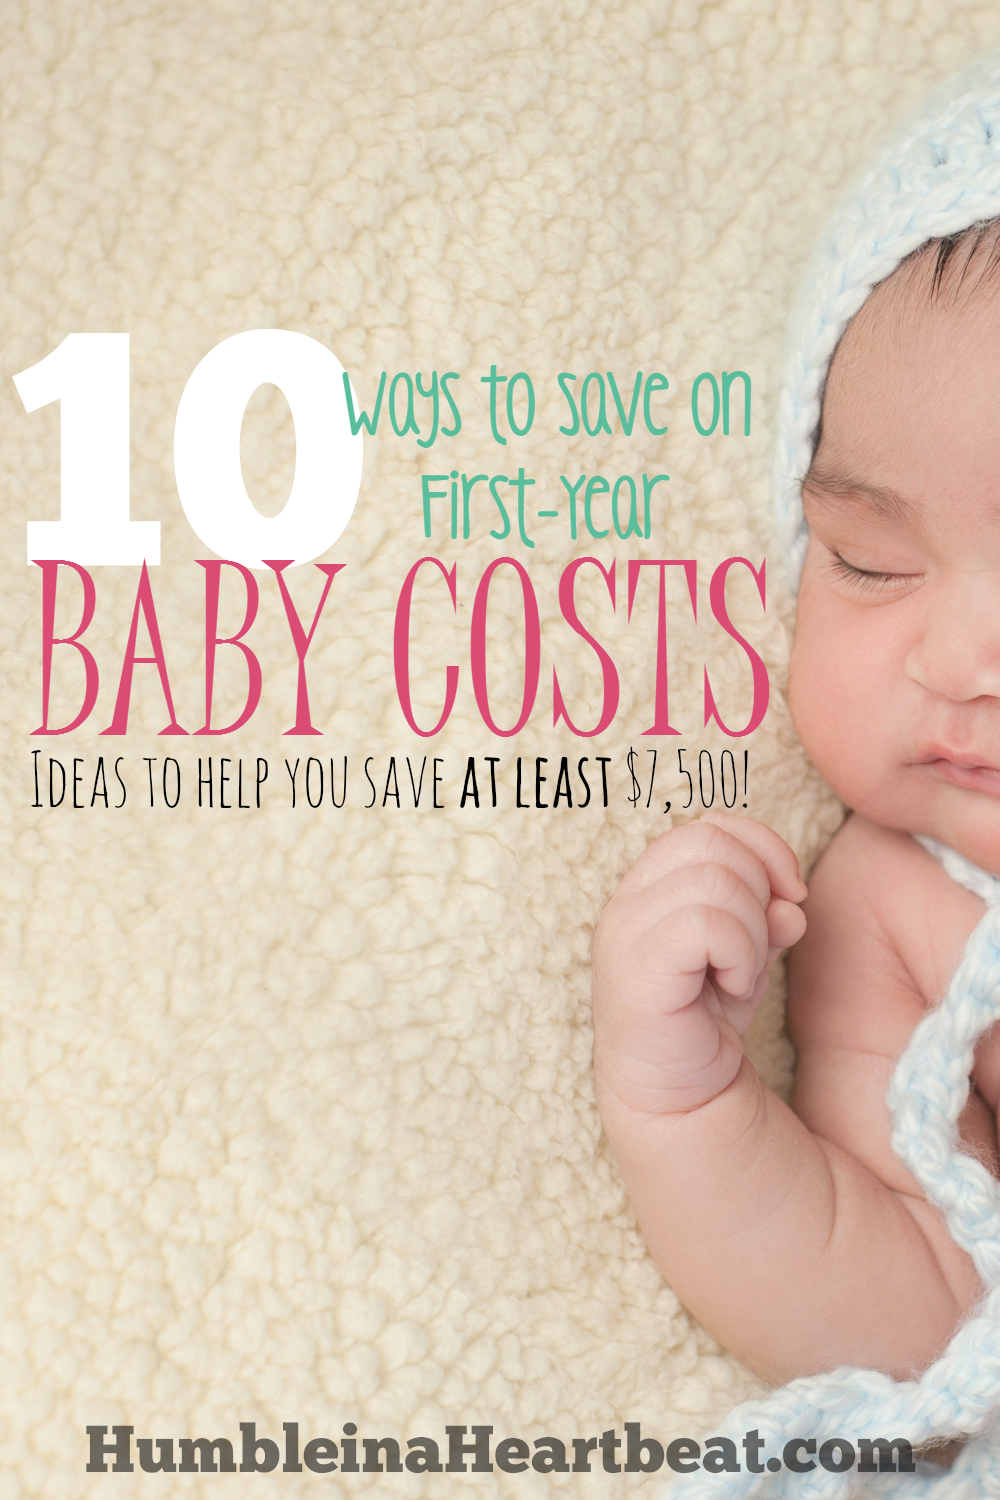 Kid's don't have to be expensive. Here's an incredibly detailed list of all the ways you can save in baby's first year. Love this!